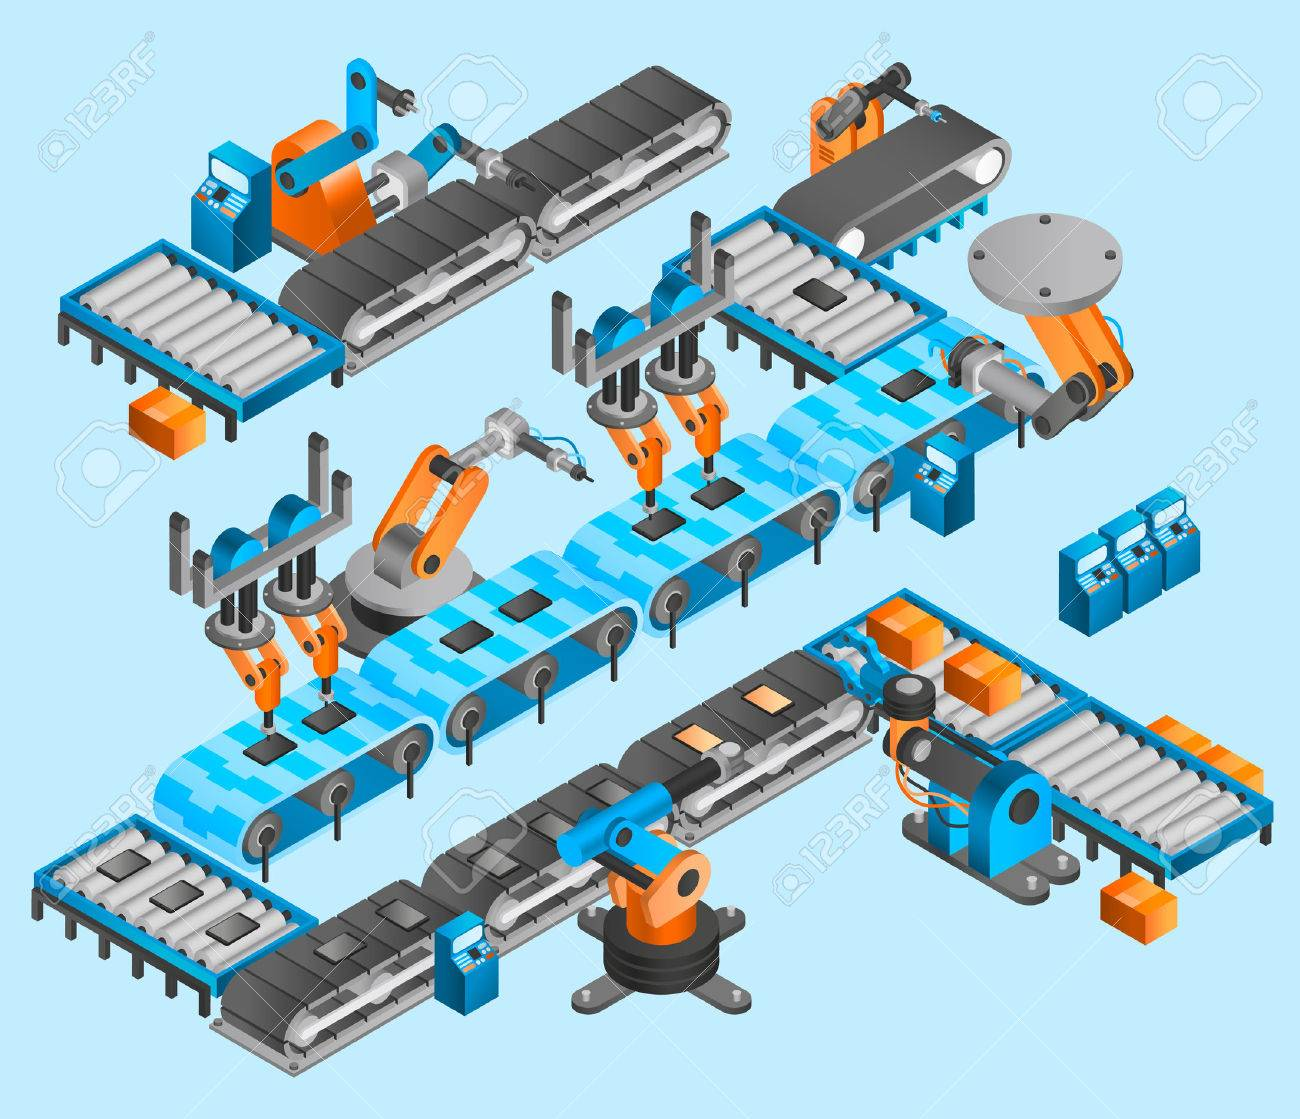 Industrial robot concept with isometric conveyor line and robotic arm manipulators vector illustration - 50338716